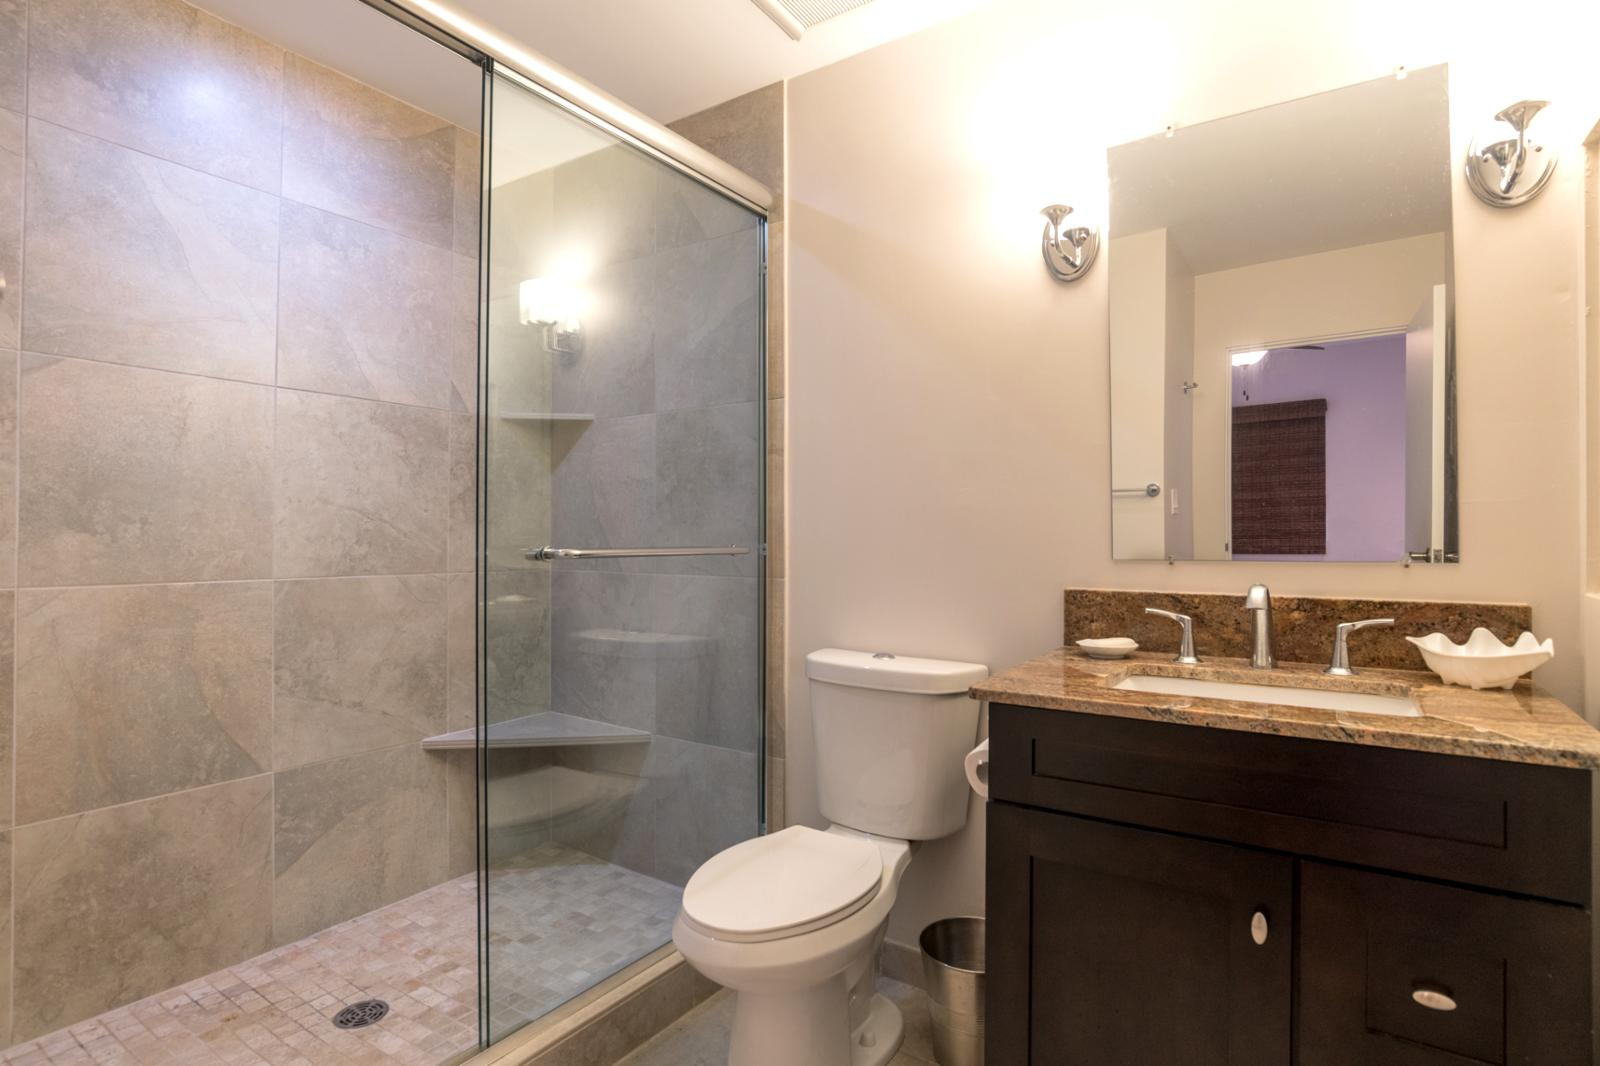 Guest bathroom located on floor 1 with Jack n Jill entry from hallway and guest bedroom 1